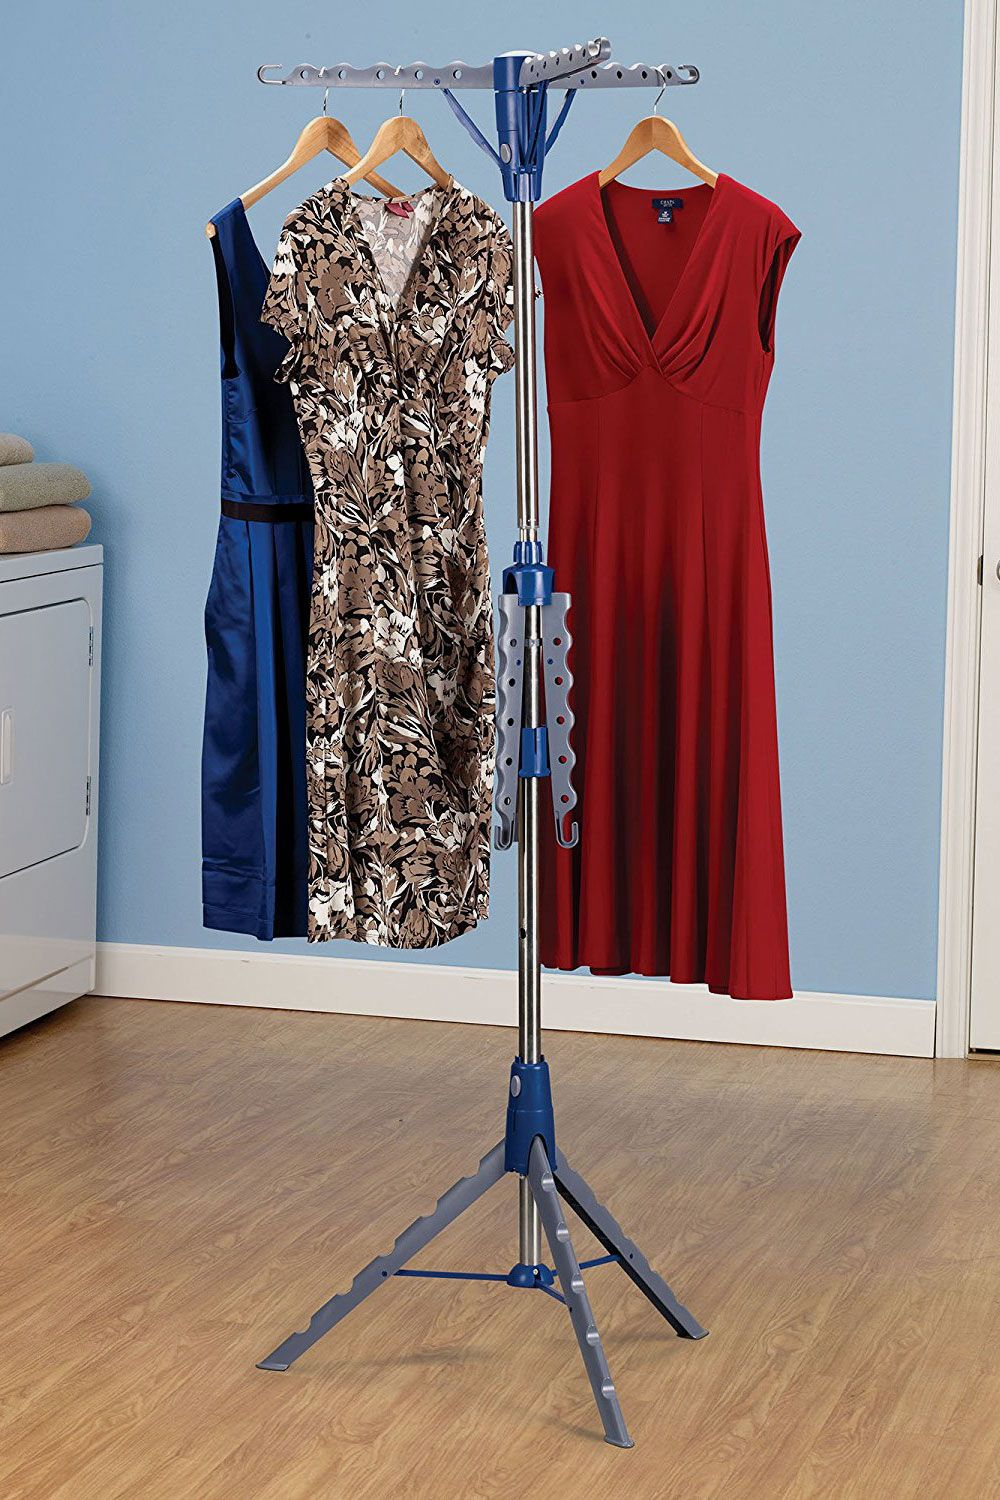 Household Essentials 5009 1 Collapsible Portable Indoor Tripod Clothes  Drying Rack